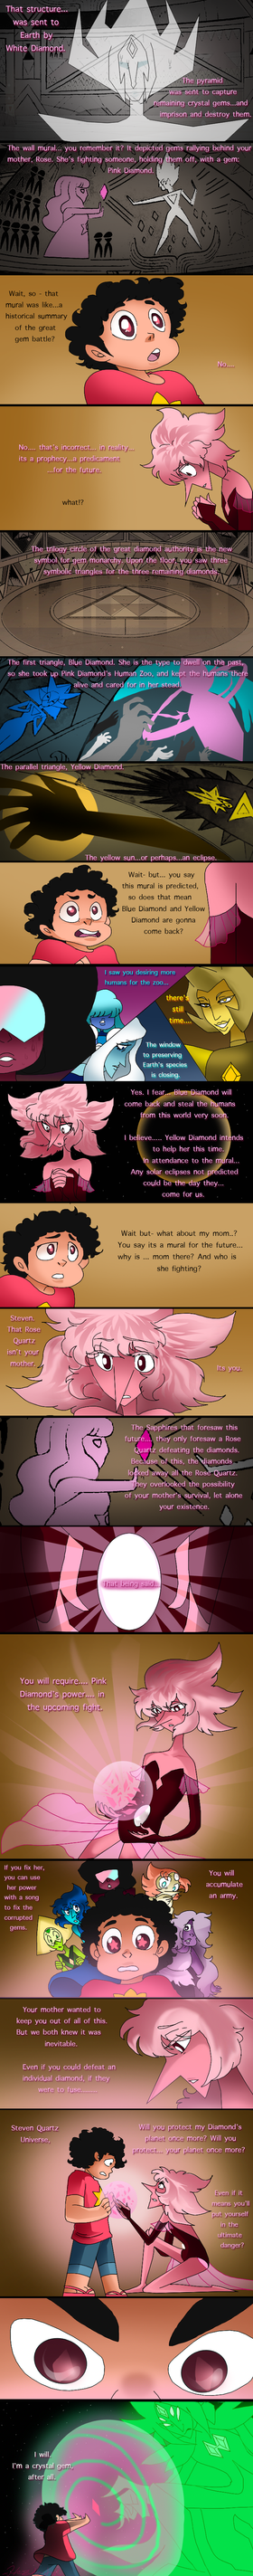 Pink Diamond's Tale p6 by HezuNeutral